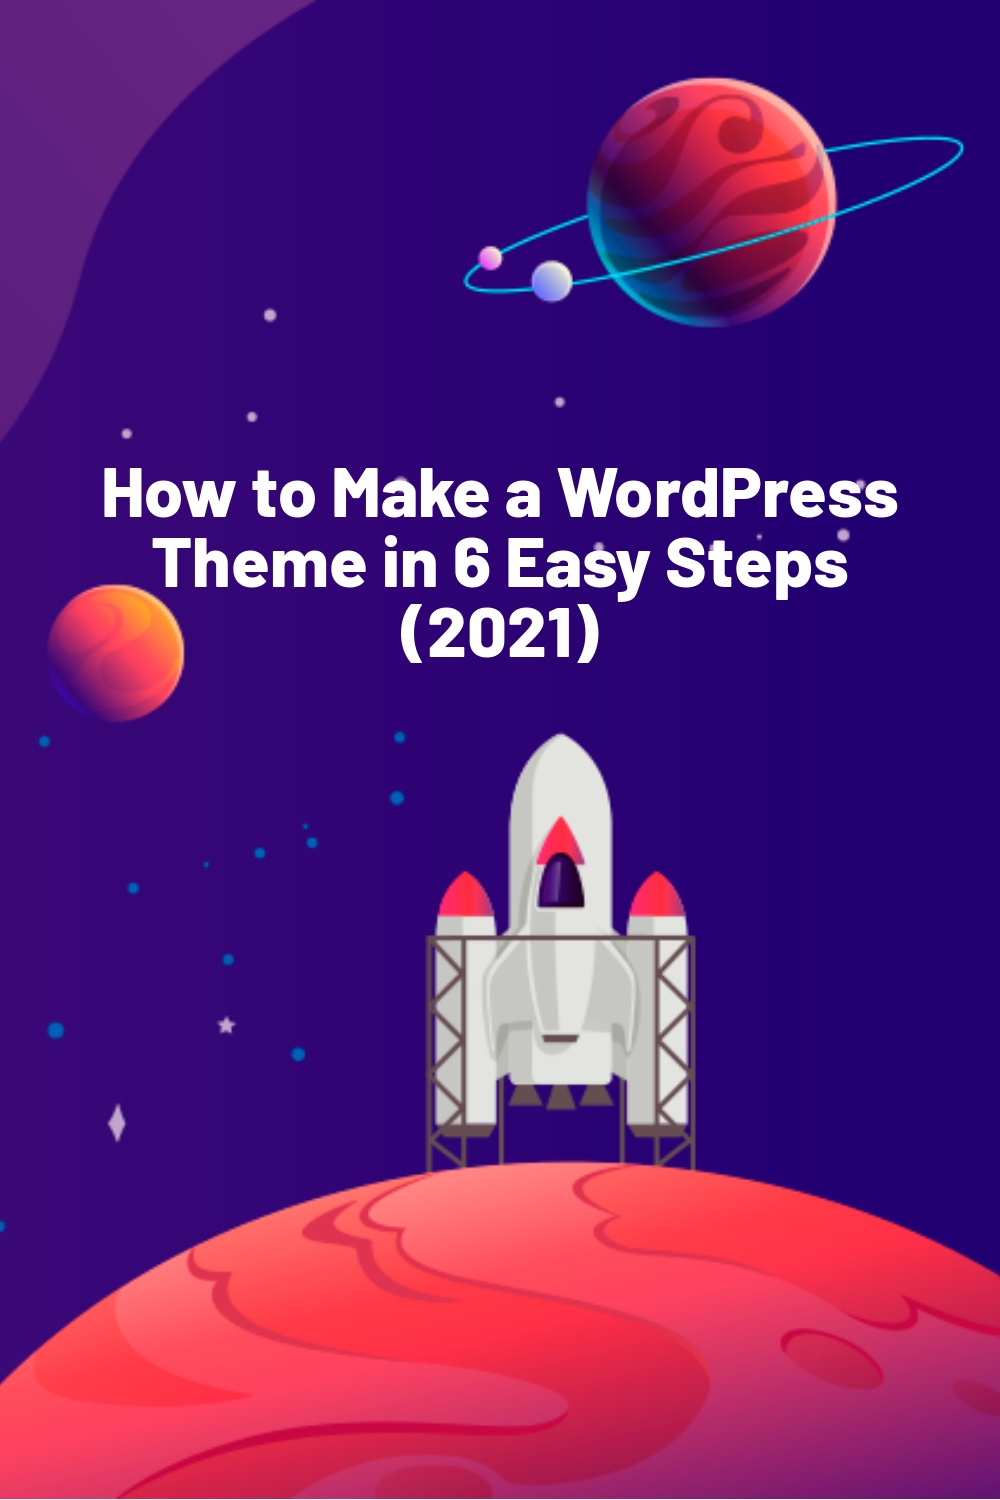 How to Make a WordPress Theme in 6 Easy Steps (2021)